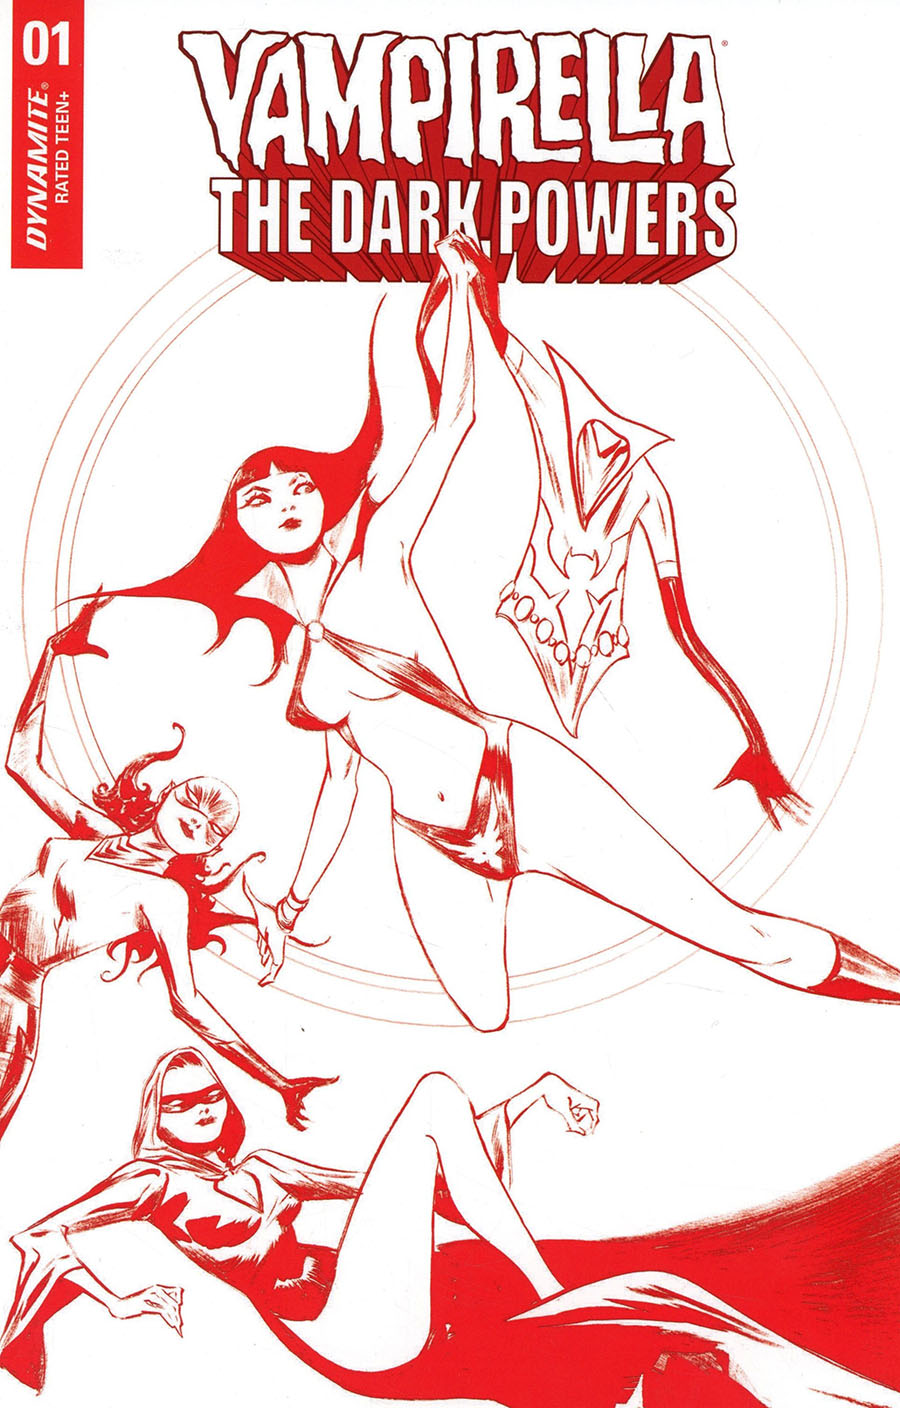 Vampirella The Dark Powers #1 Cover Z-H Ultra-Premium Limited Edition Jae Lee Crimson Red Line Art Cover